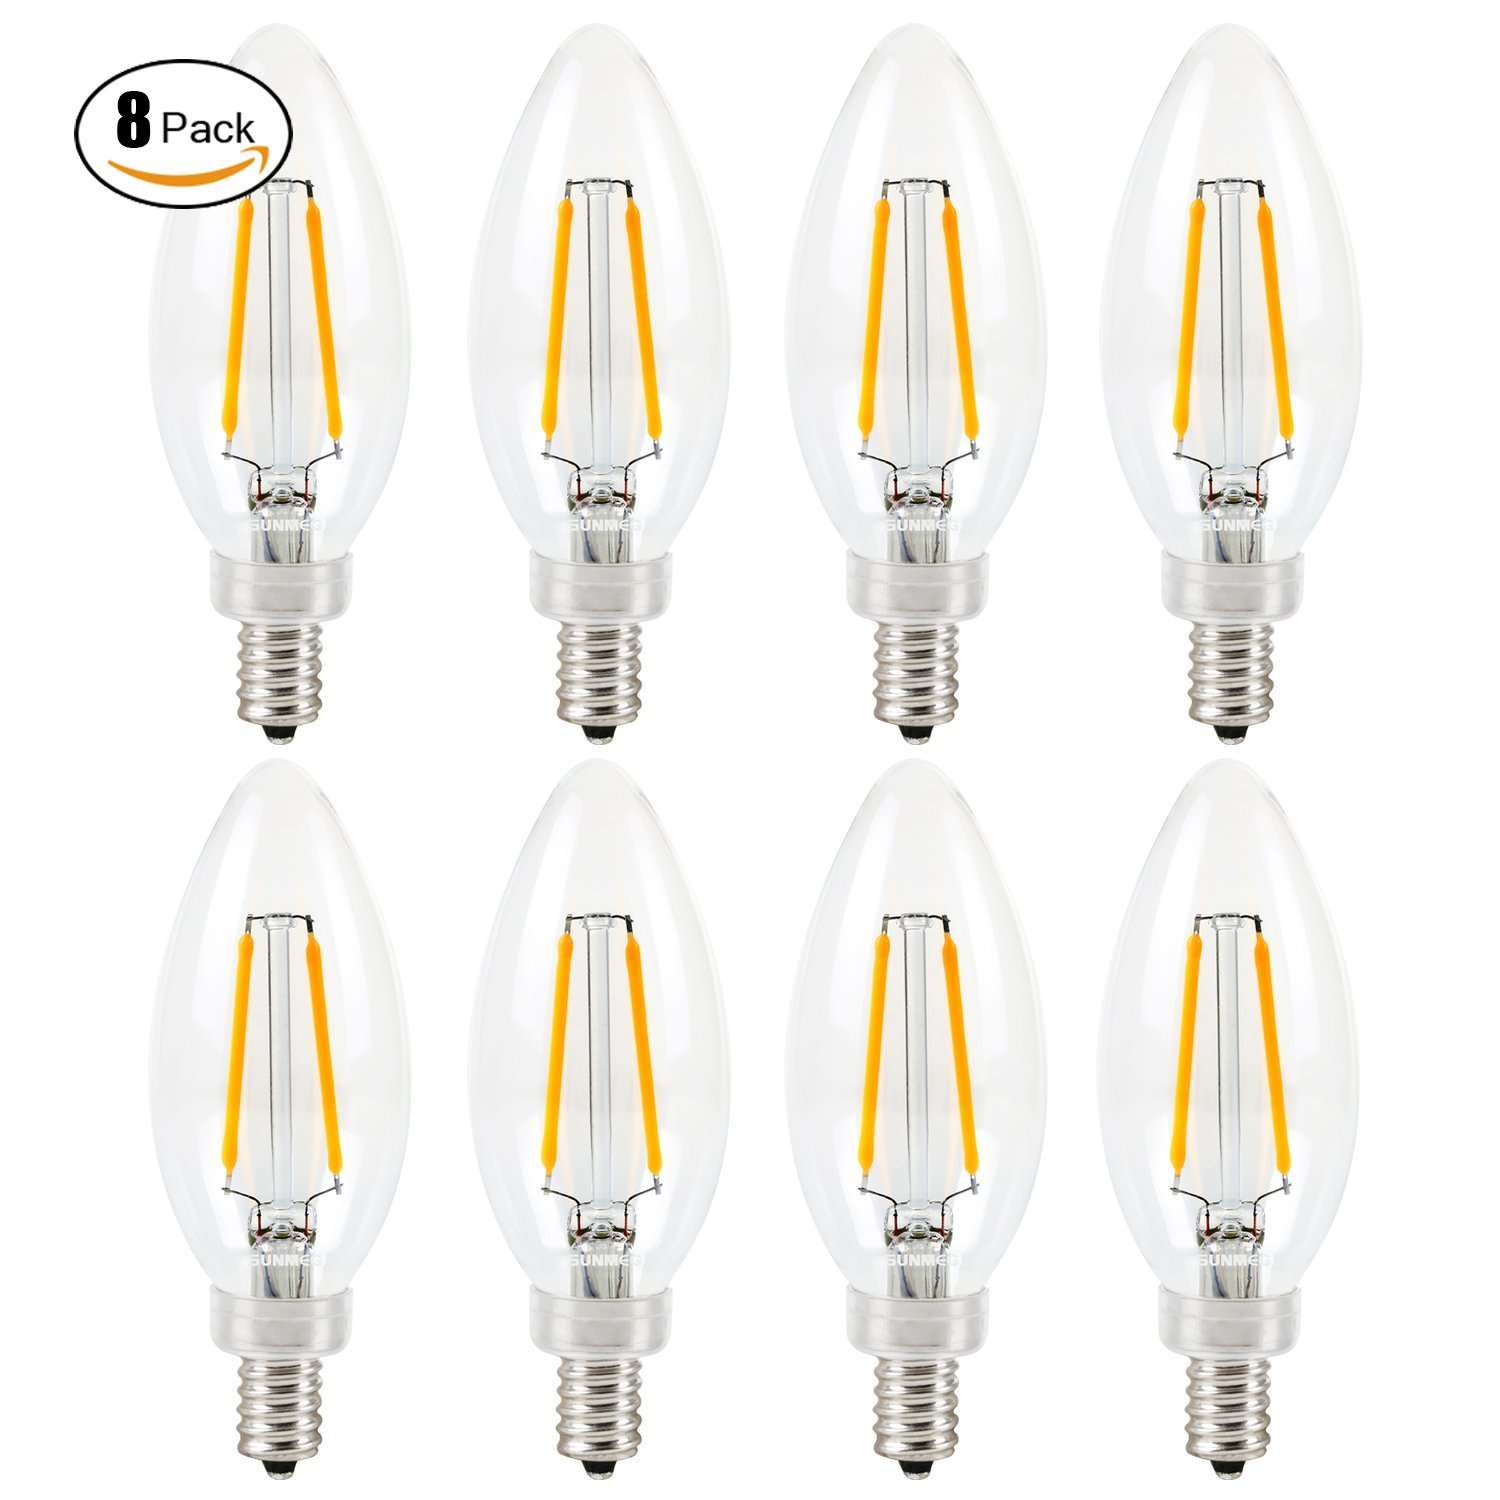 SUNMEG Dimmable B11 2W E12 Base LED Candelabra ,LED Filament Bulb, 2700K Warm White, 360 Degree Beam Angle, Equivalent to 20W Incandescent (8 Pack)